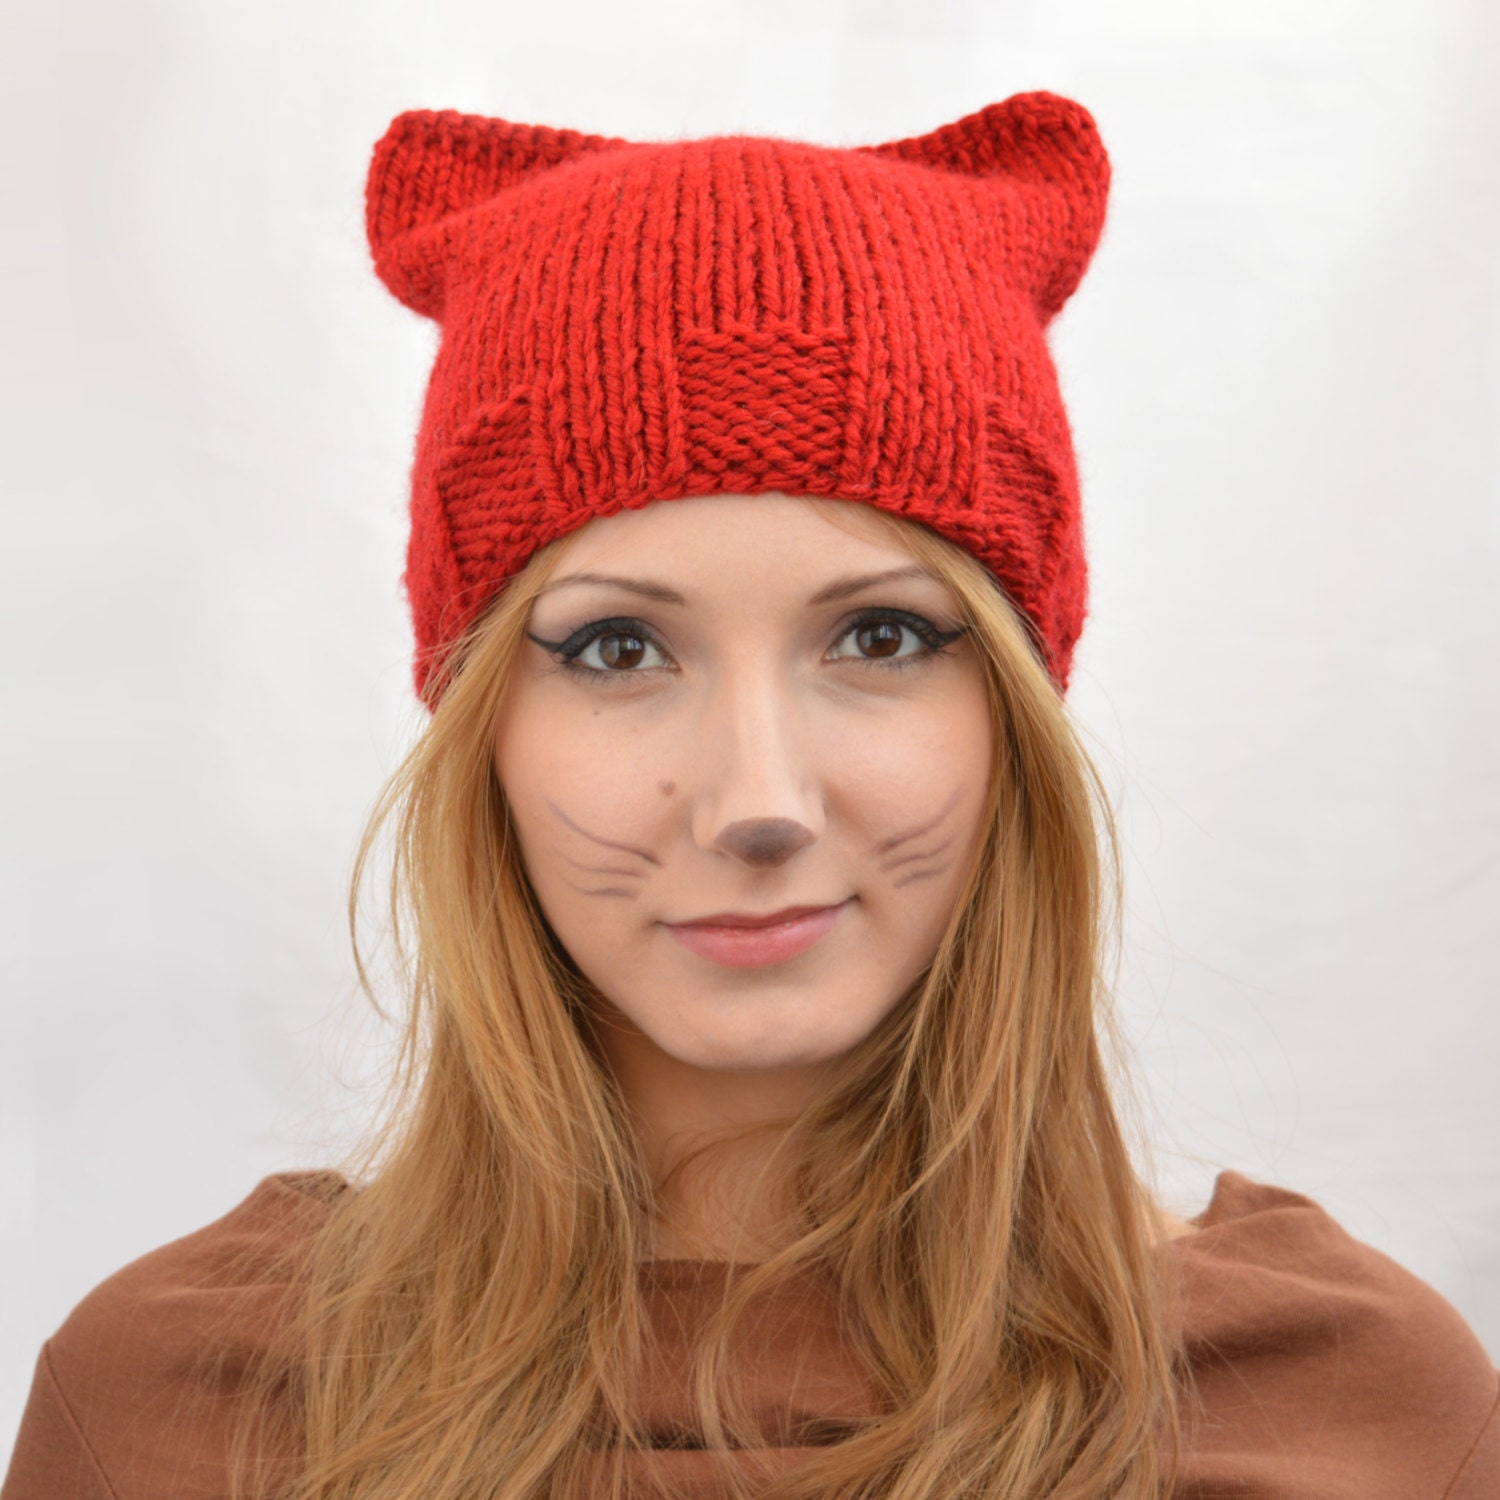 Knitting Women S Hats : Red square cat hat knit ear or beanie womens